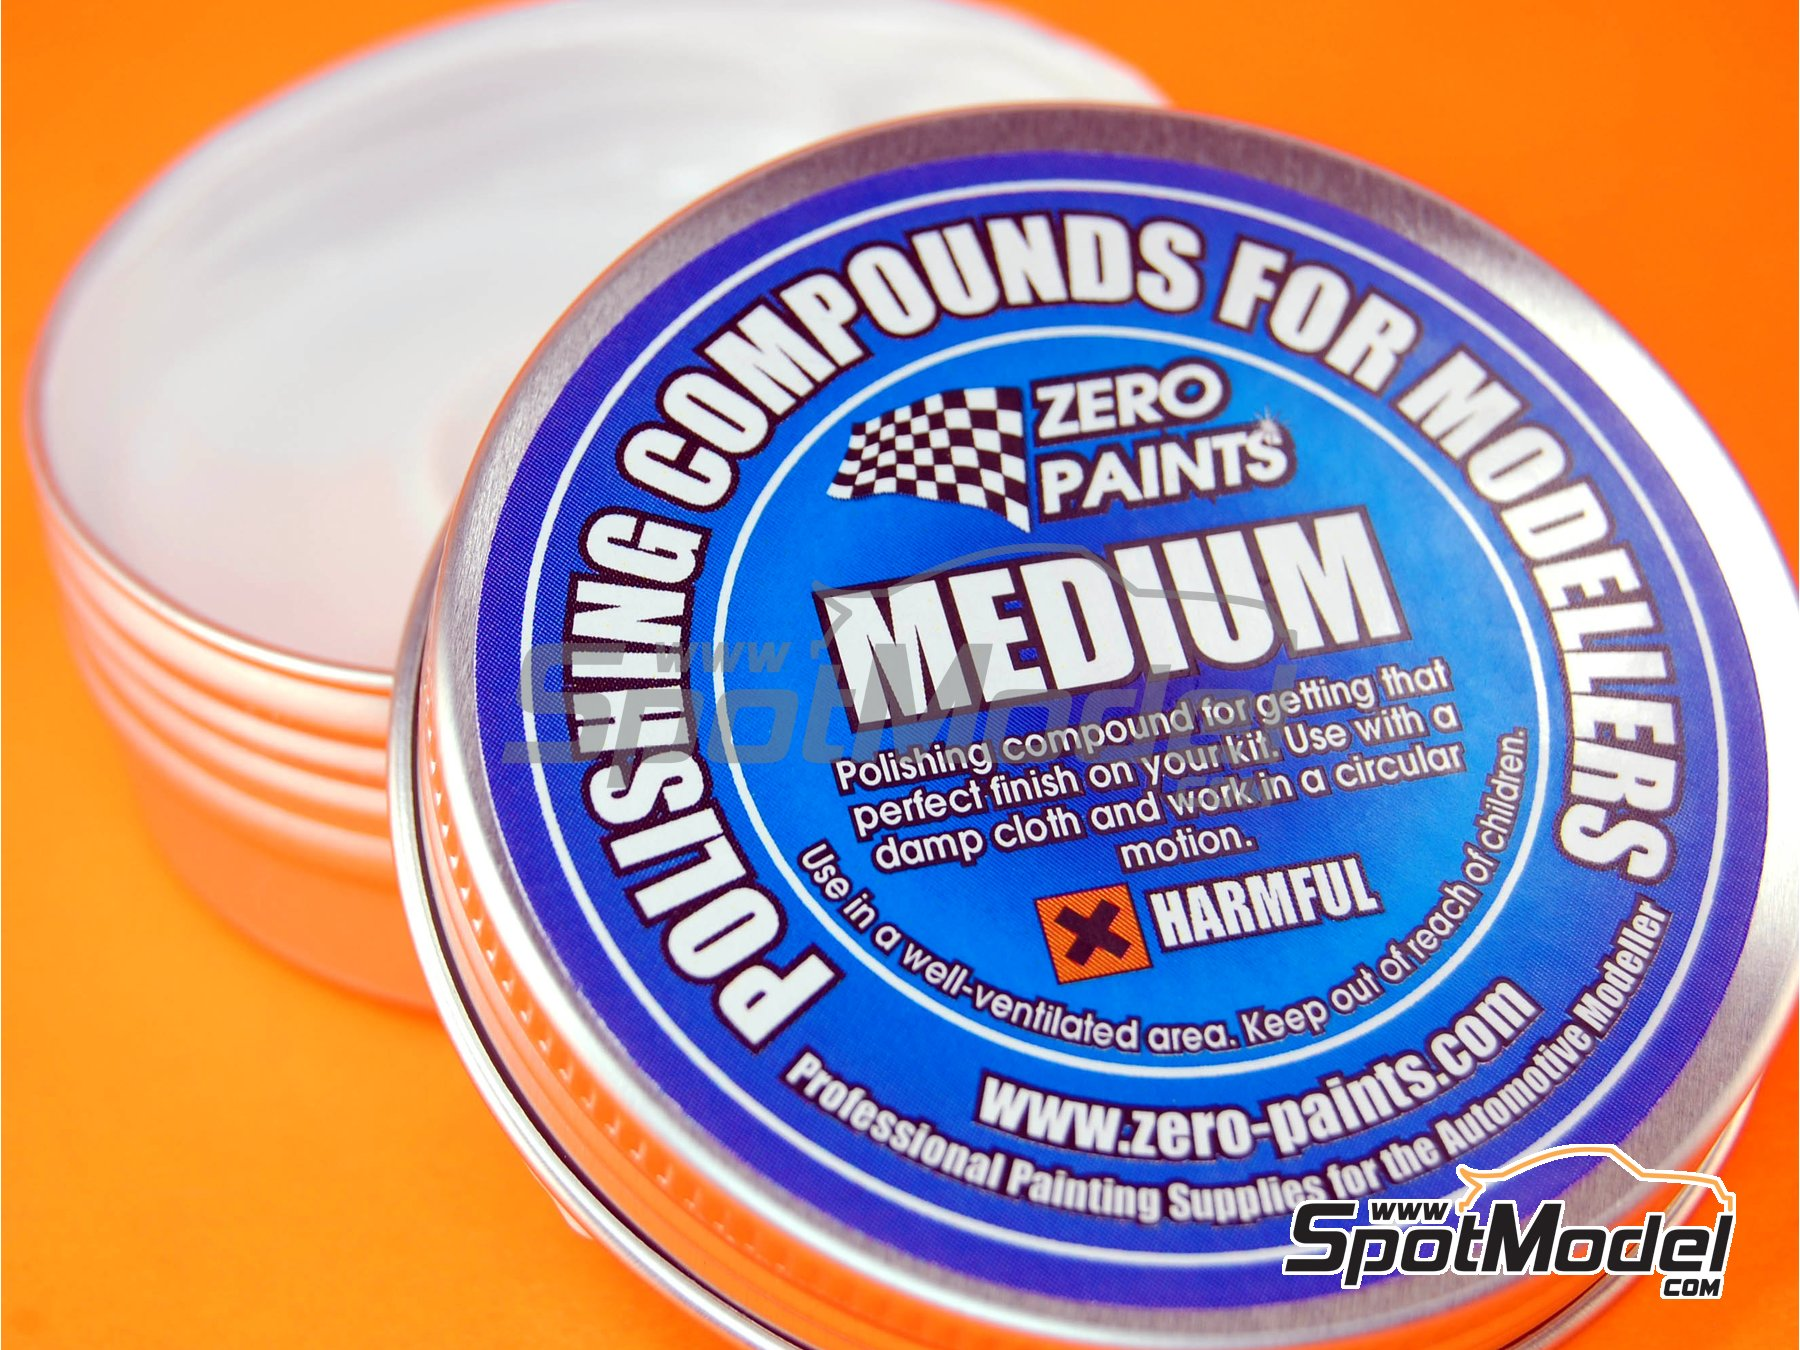 Image 1: Pulimento de grano medio - Medium polishing compound | Pulimento fabricado por Zero Paints (ref. ZP-6007)